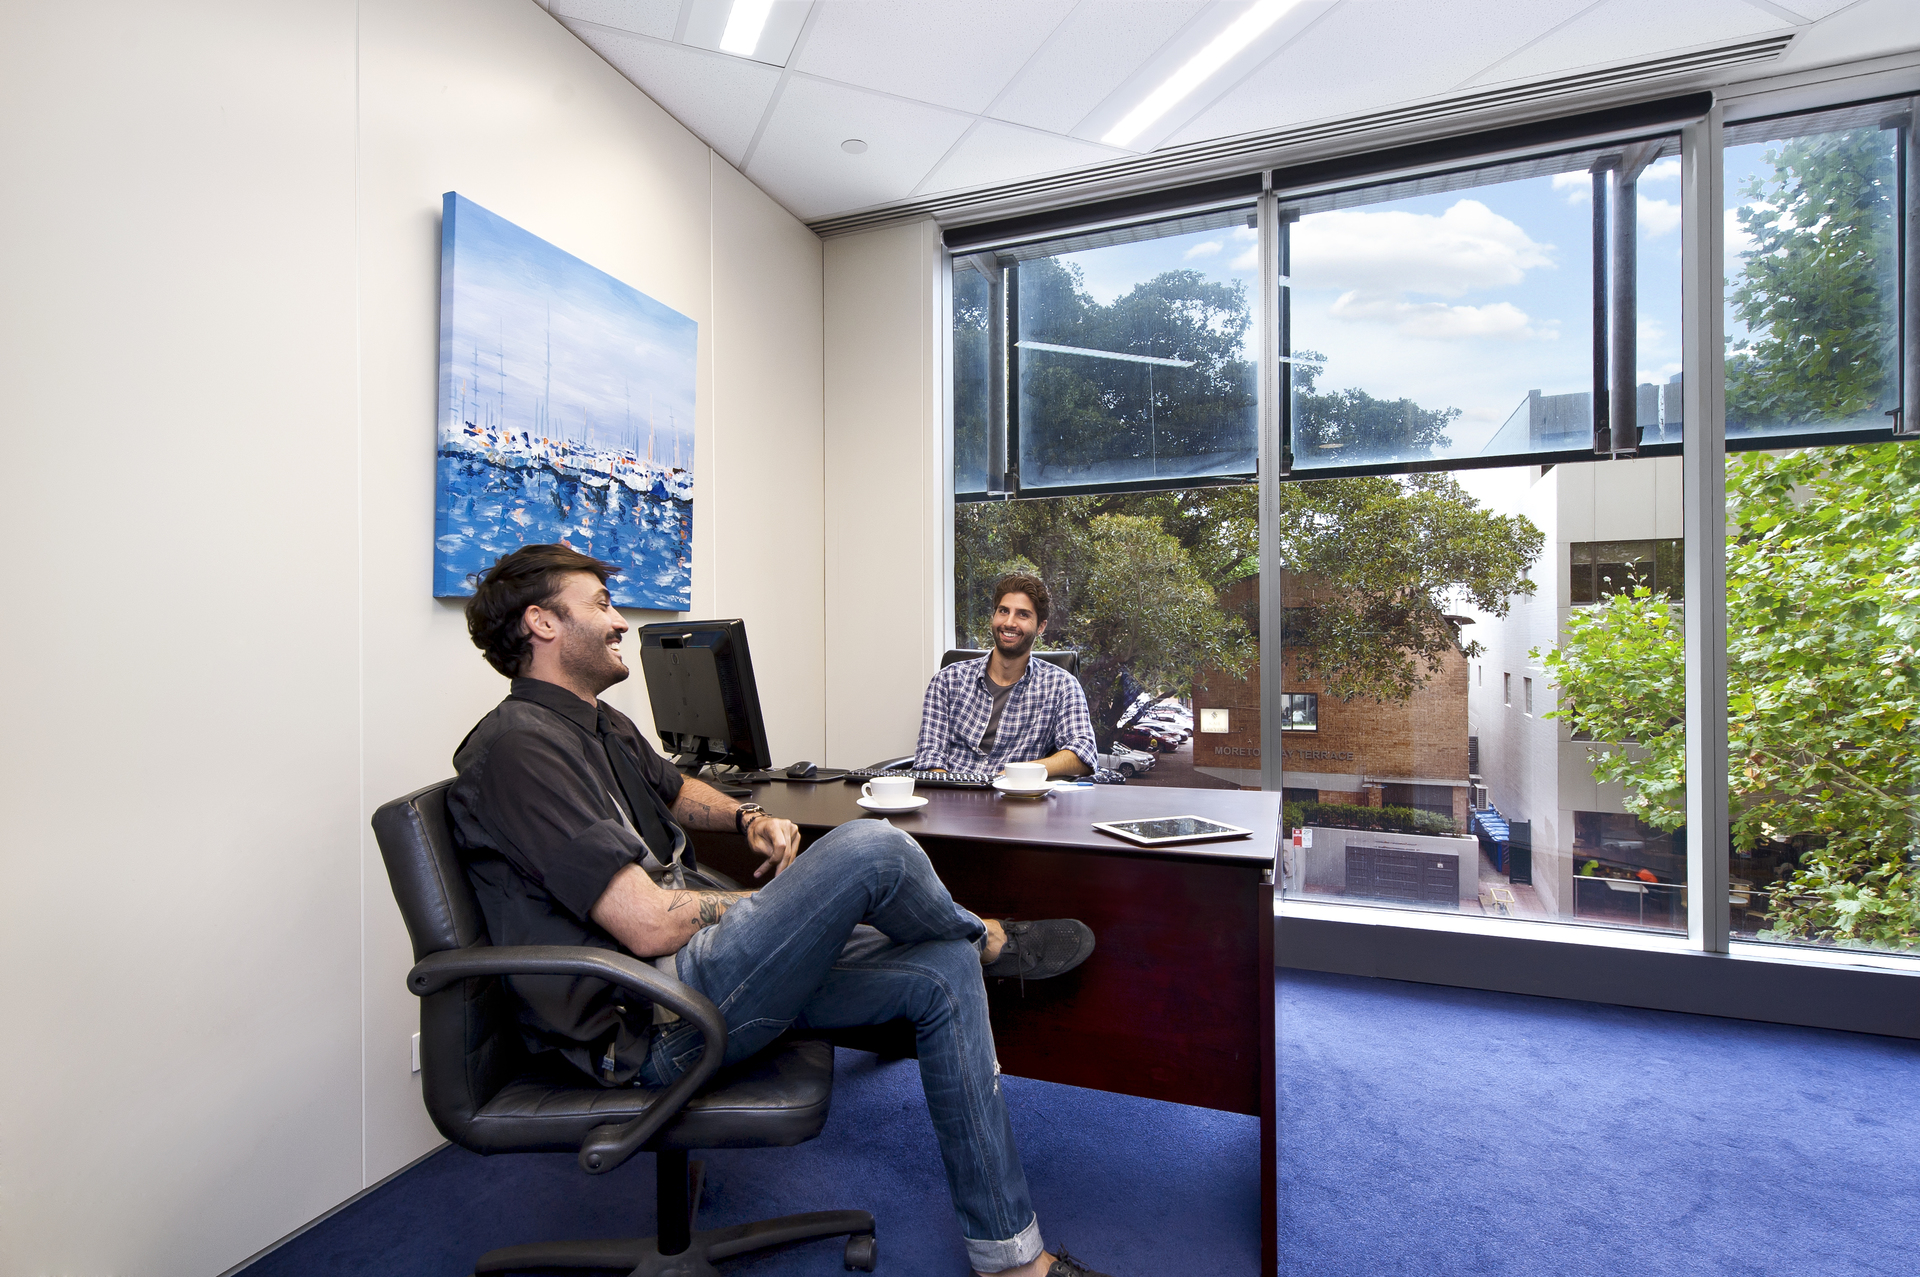 2 PERSON OFFICE IN PARRAMATTA WITH AMAZING VIEWS